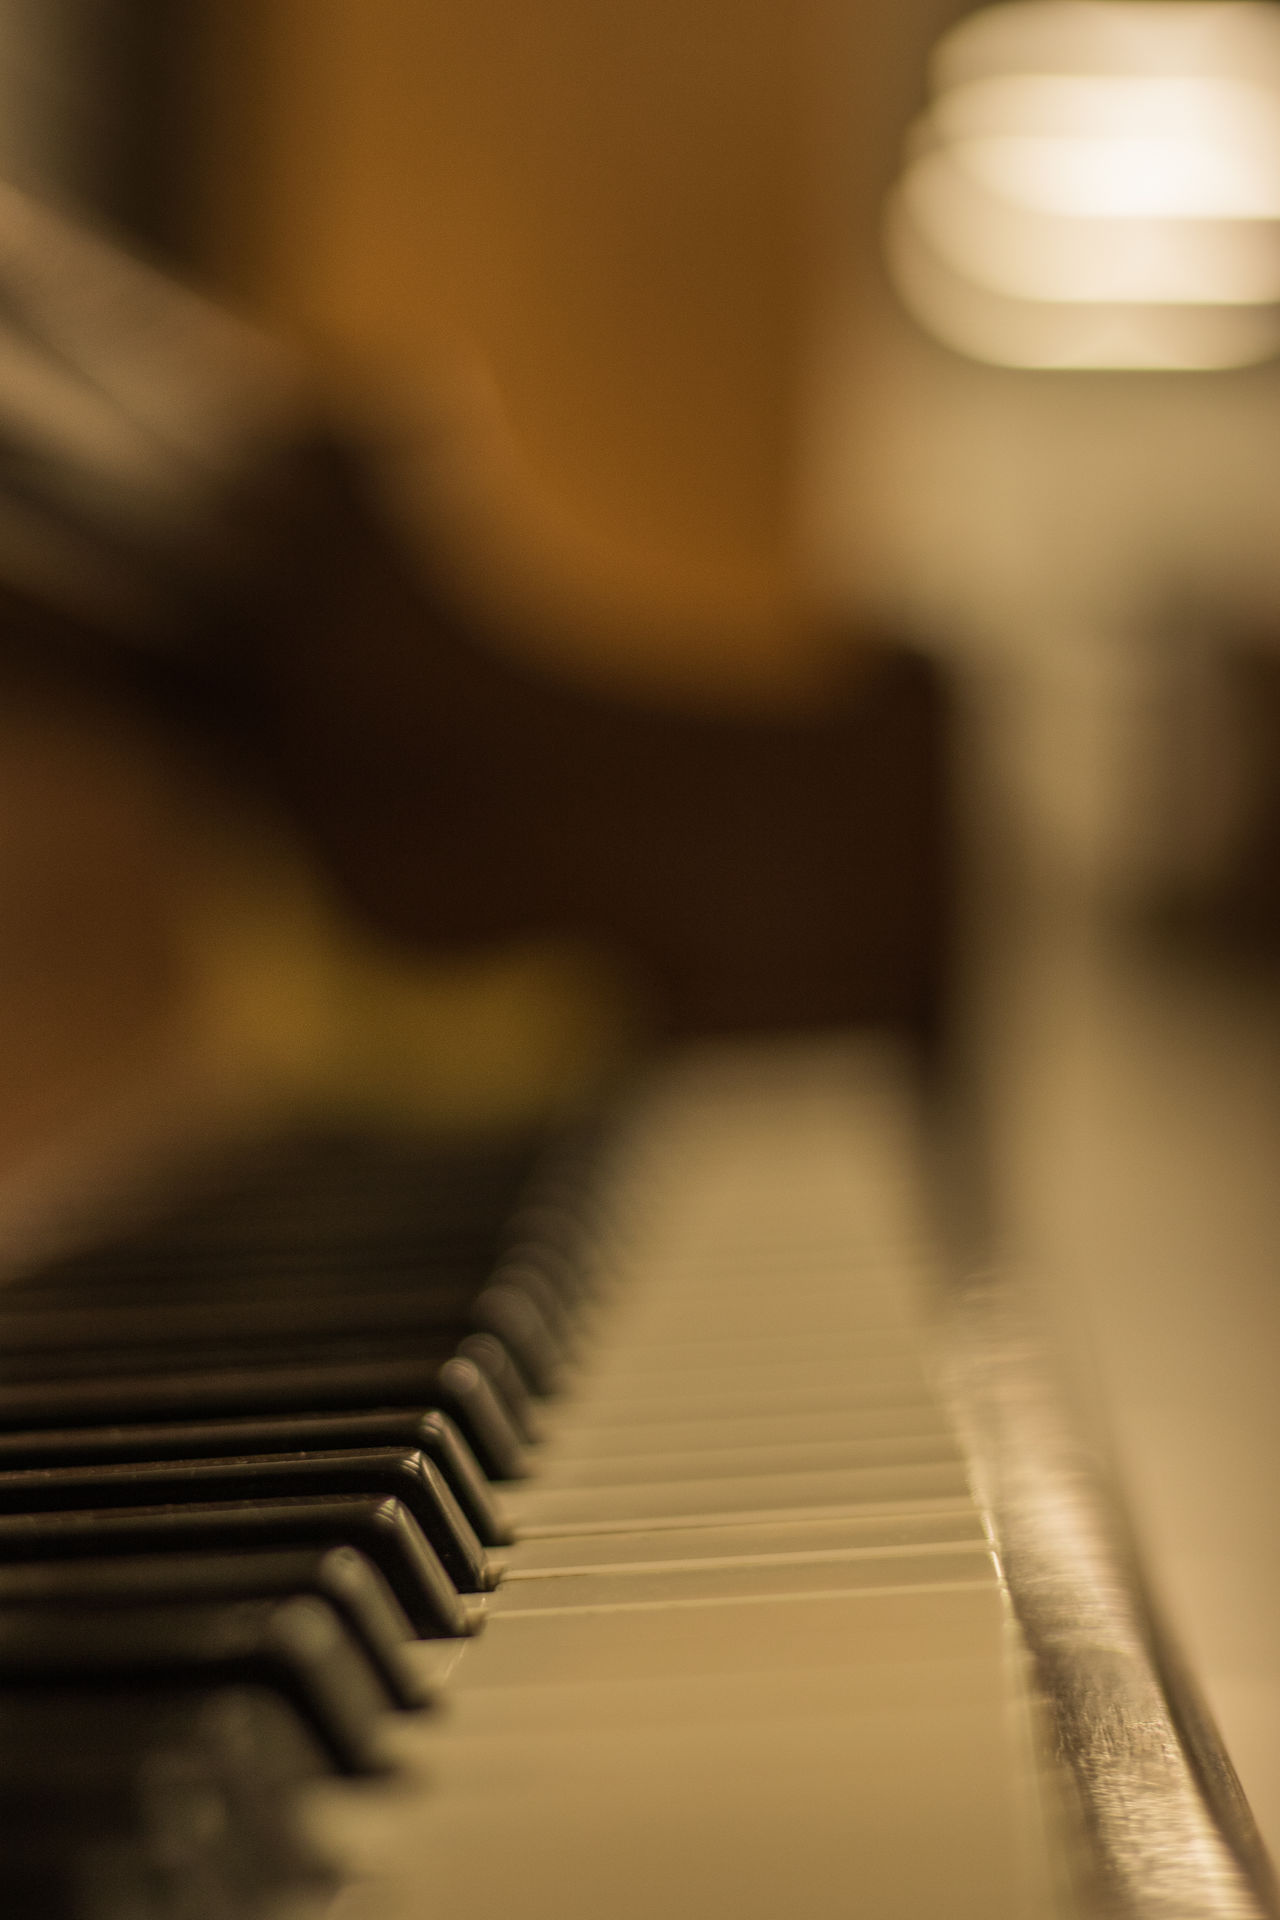 shallow depth of field studio shot of piano keys Arts Culture And Entertainment Blackandwhite Bokeh Bokeh Photography Bokehlicious Close-up Day Dof Dof_addicts Dofaddicts Howard Roberts Indoors  Keys Light And Shadow Music Musical Instrument No People Piano Piano Key Piano Keys Shallow Depth Of Field Studio Photography Studio Shot